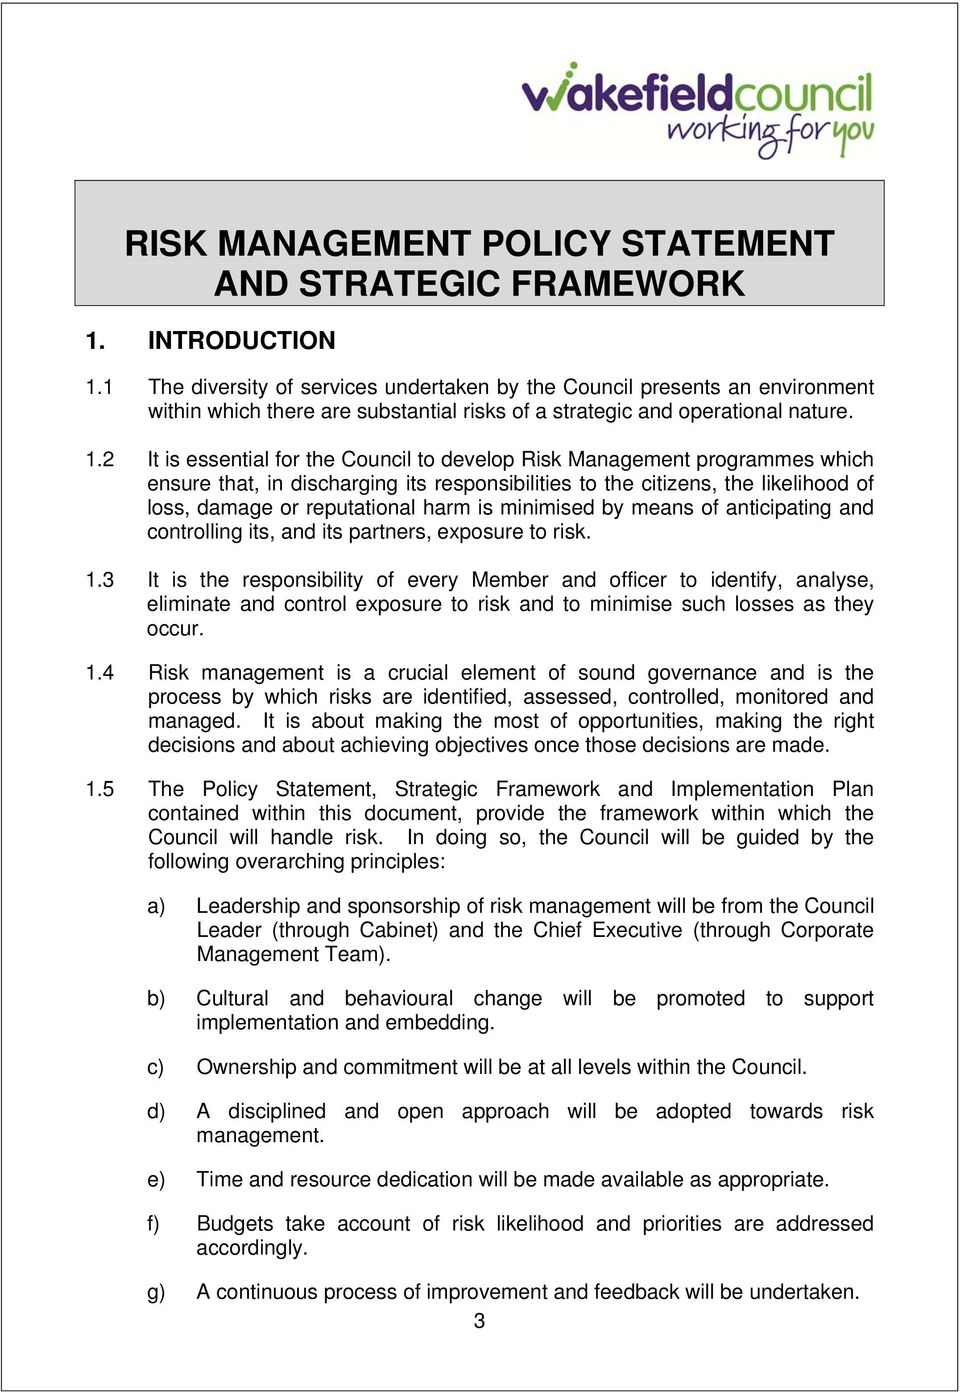 2 It is essential for the Council to develop Risk Management programmes which ensure that, in discharging its responsibilities to the citizens, the likelihood of loss, damage or reputational harm is